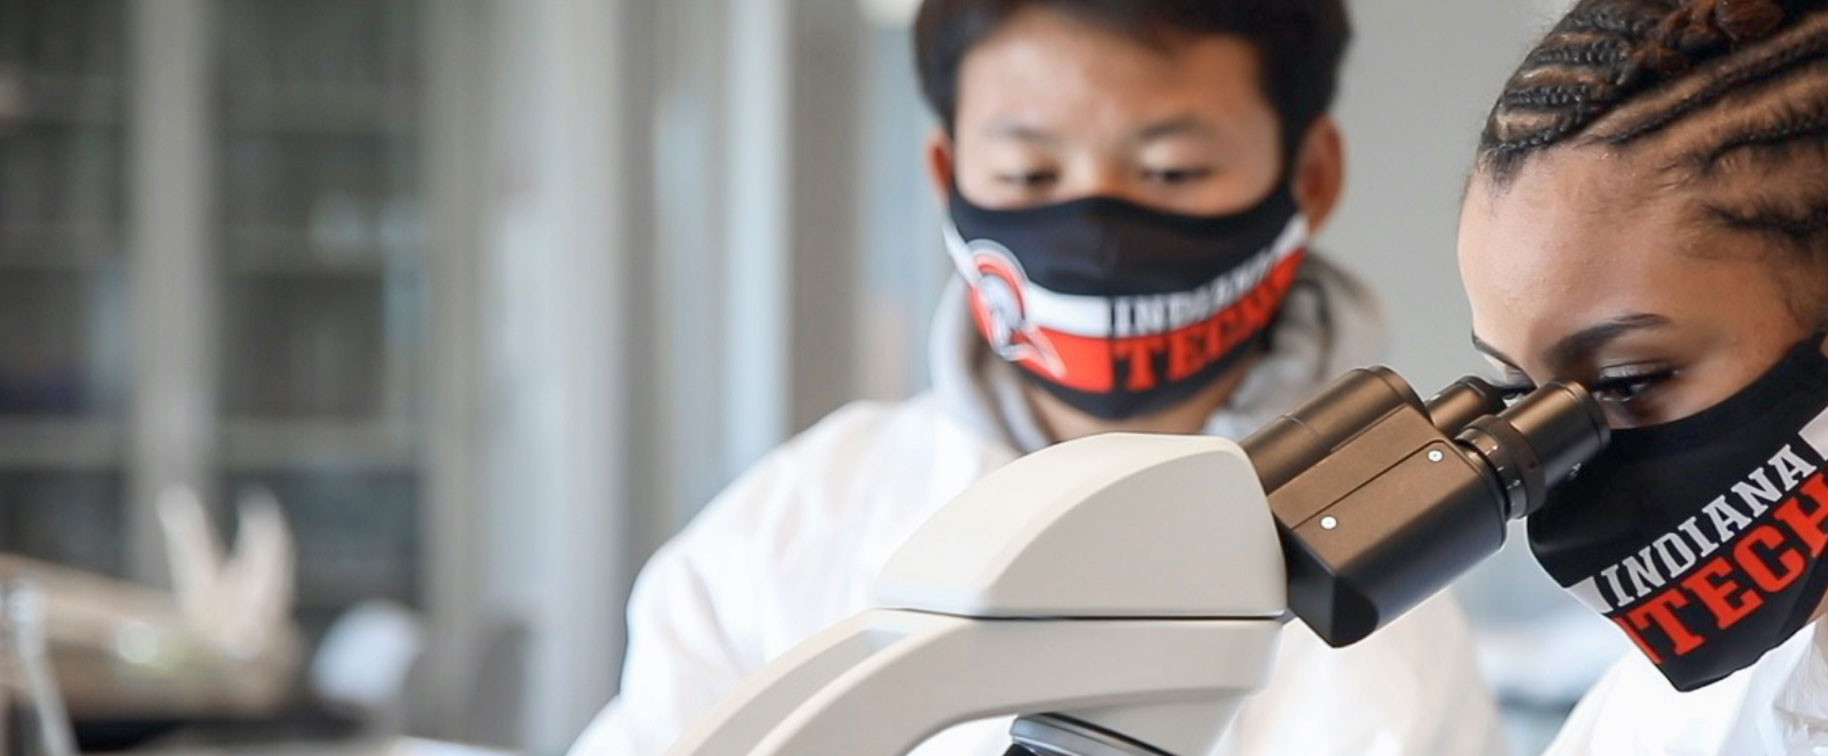 Students in masks using a microscope